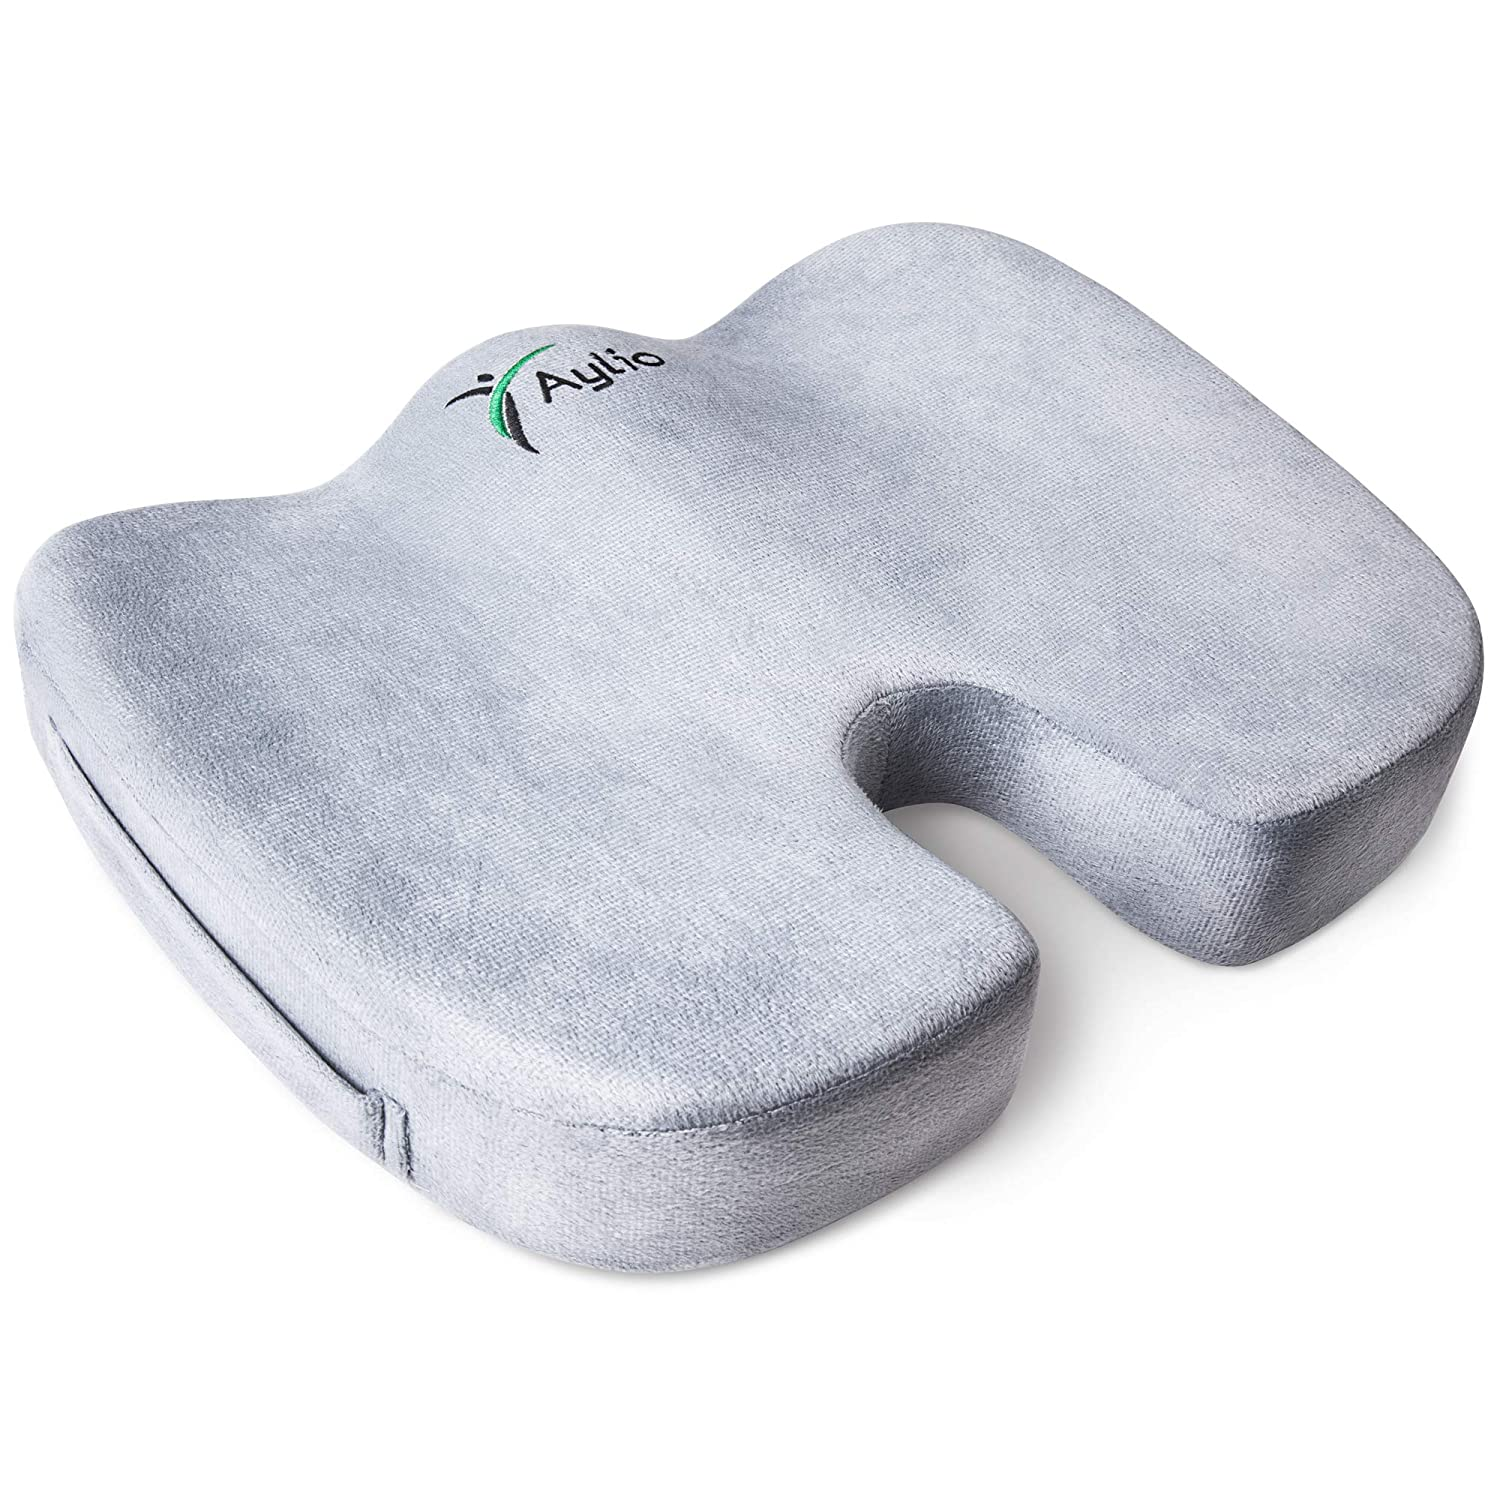 Aylio Coccyx Orthopedic Comfort Seat Cushion